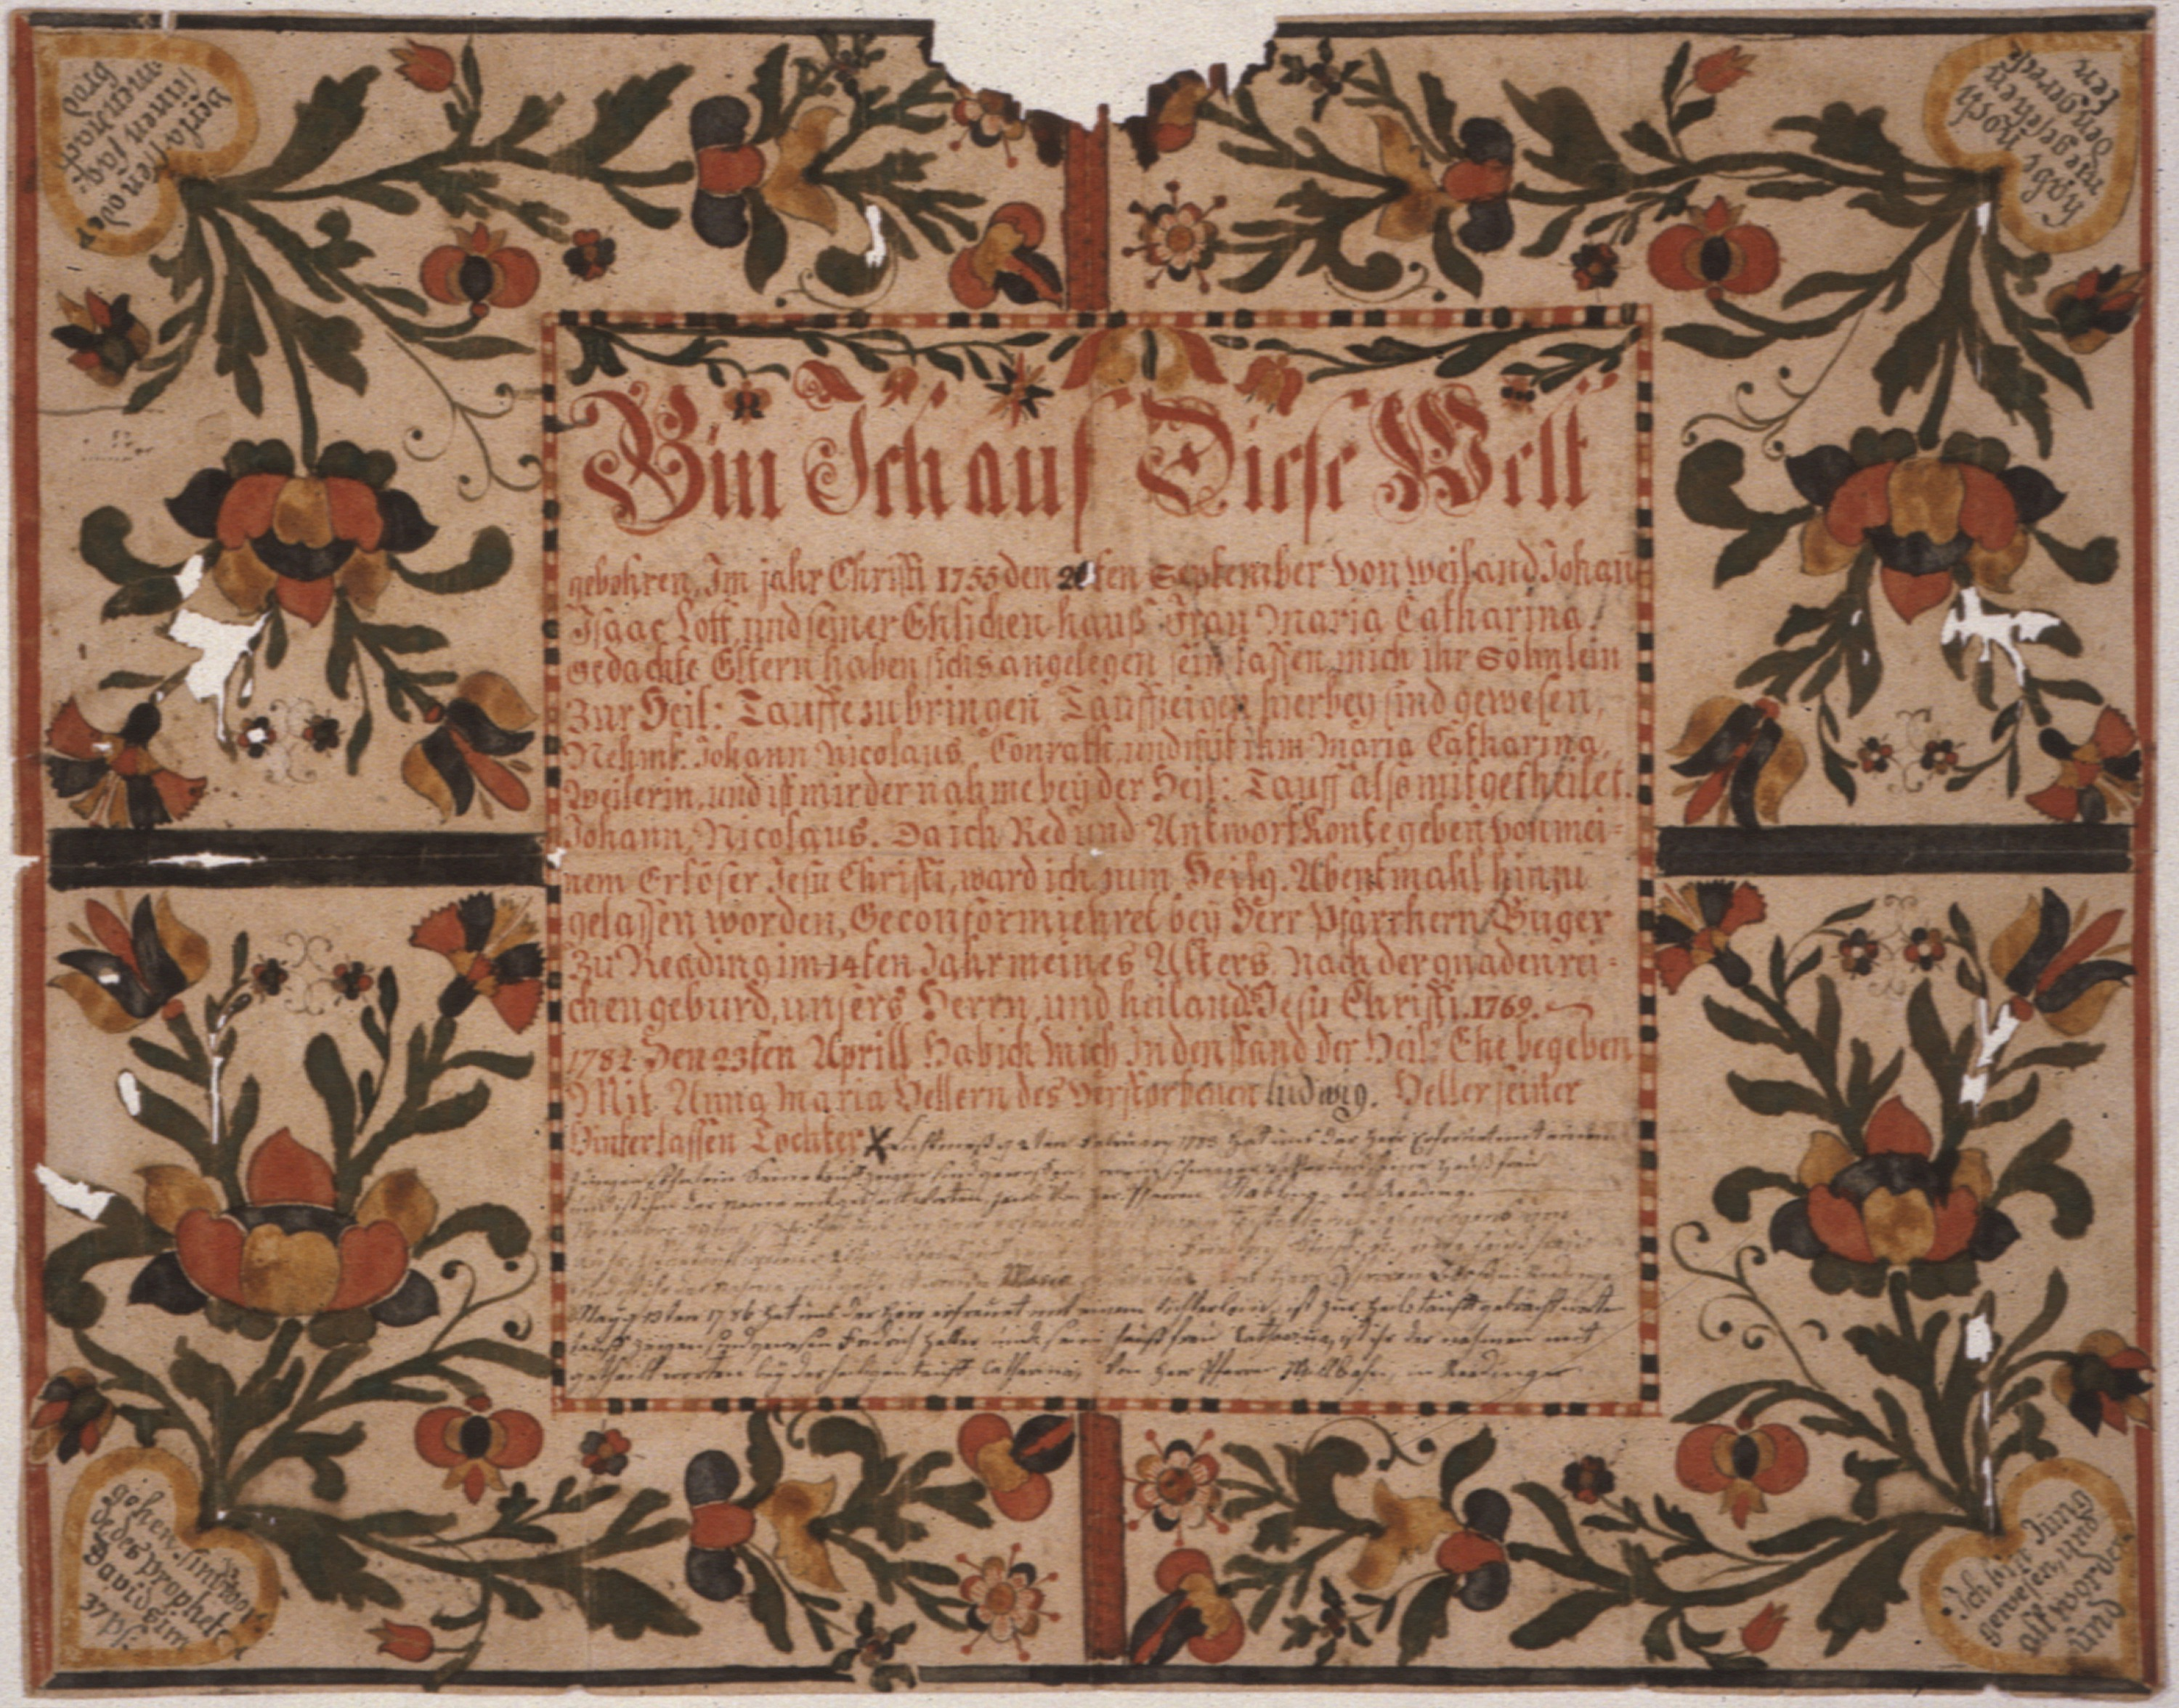 Revolutionary fraktur Family Found File illustrated Record War In qtwaYOa